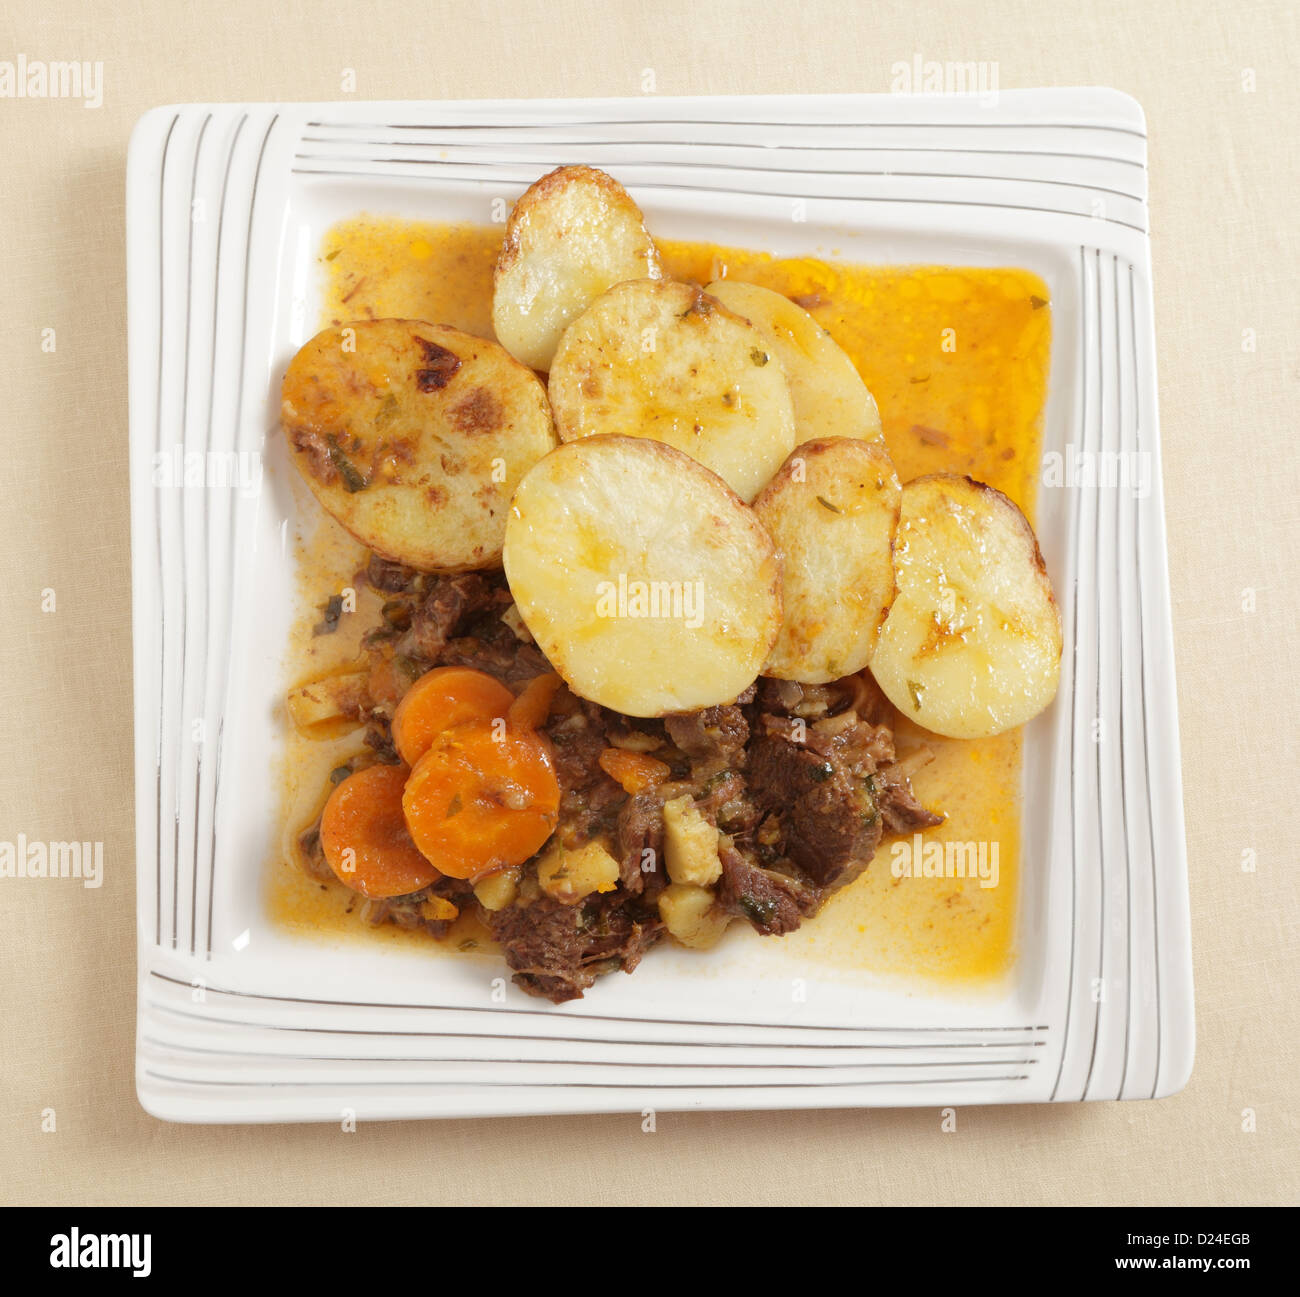 A homemade stew of beef, onion, carrots and parsnips, made in a pressure cooker, served with sliced sauteed potatoes - Stock Image